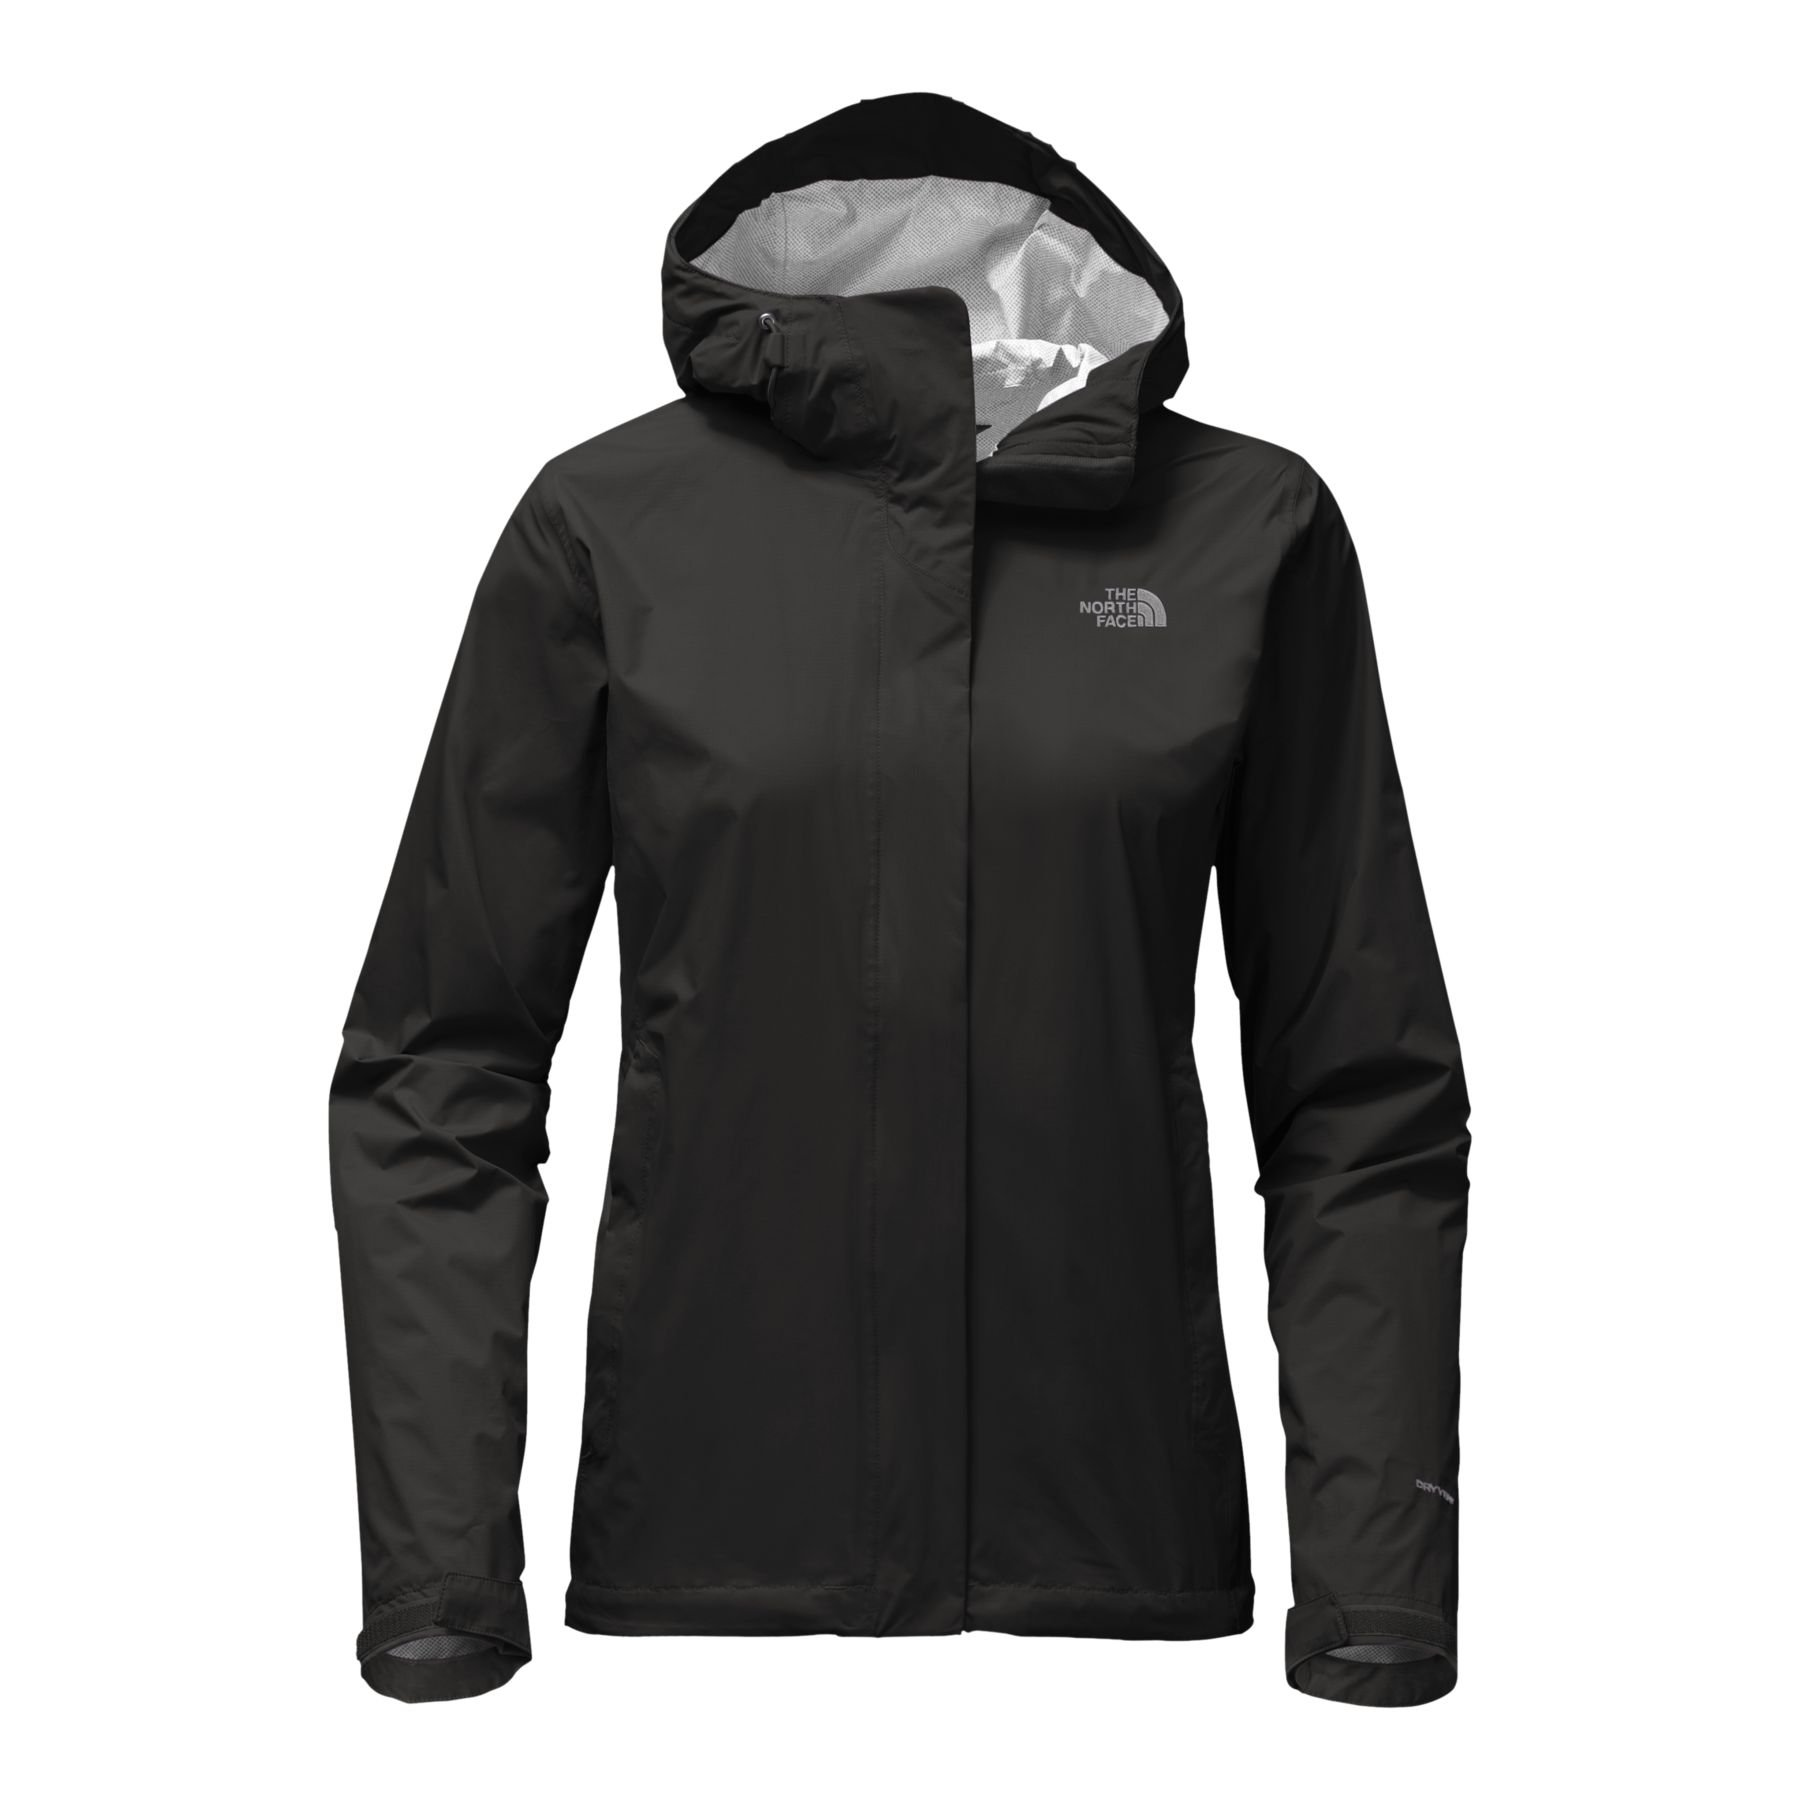 The North Face Womens Venture 2 Jacket TNF Black - M